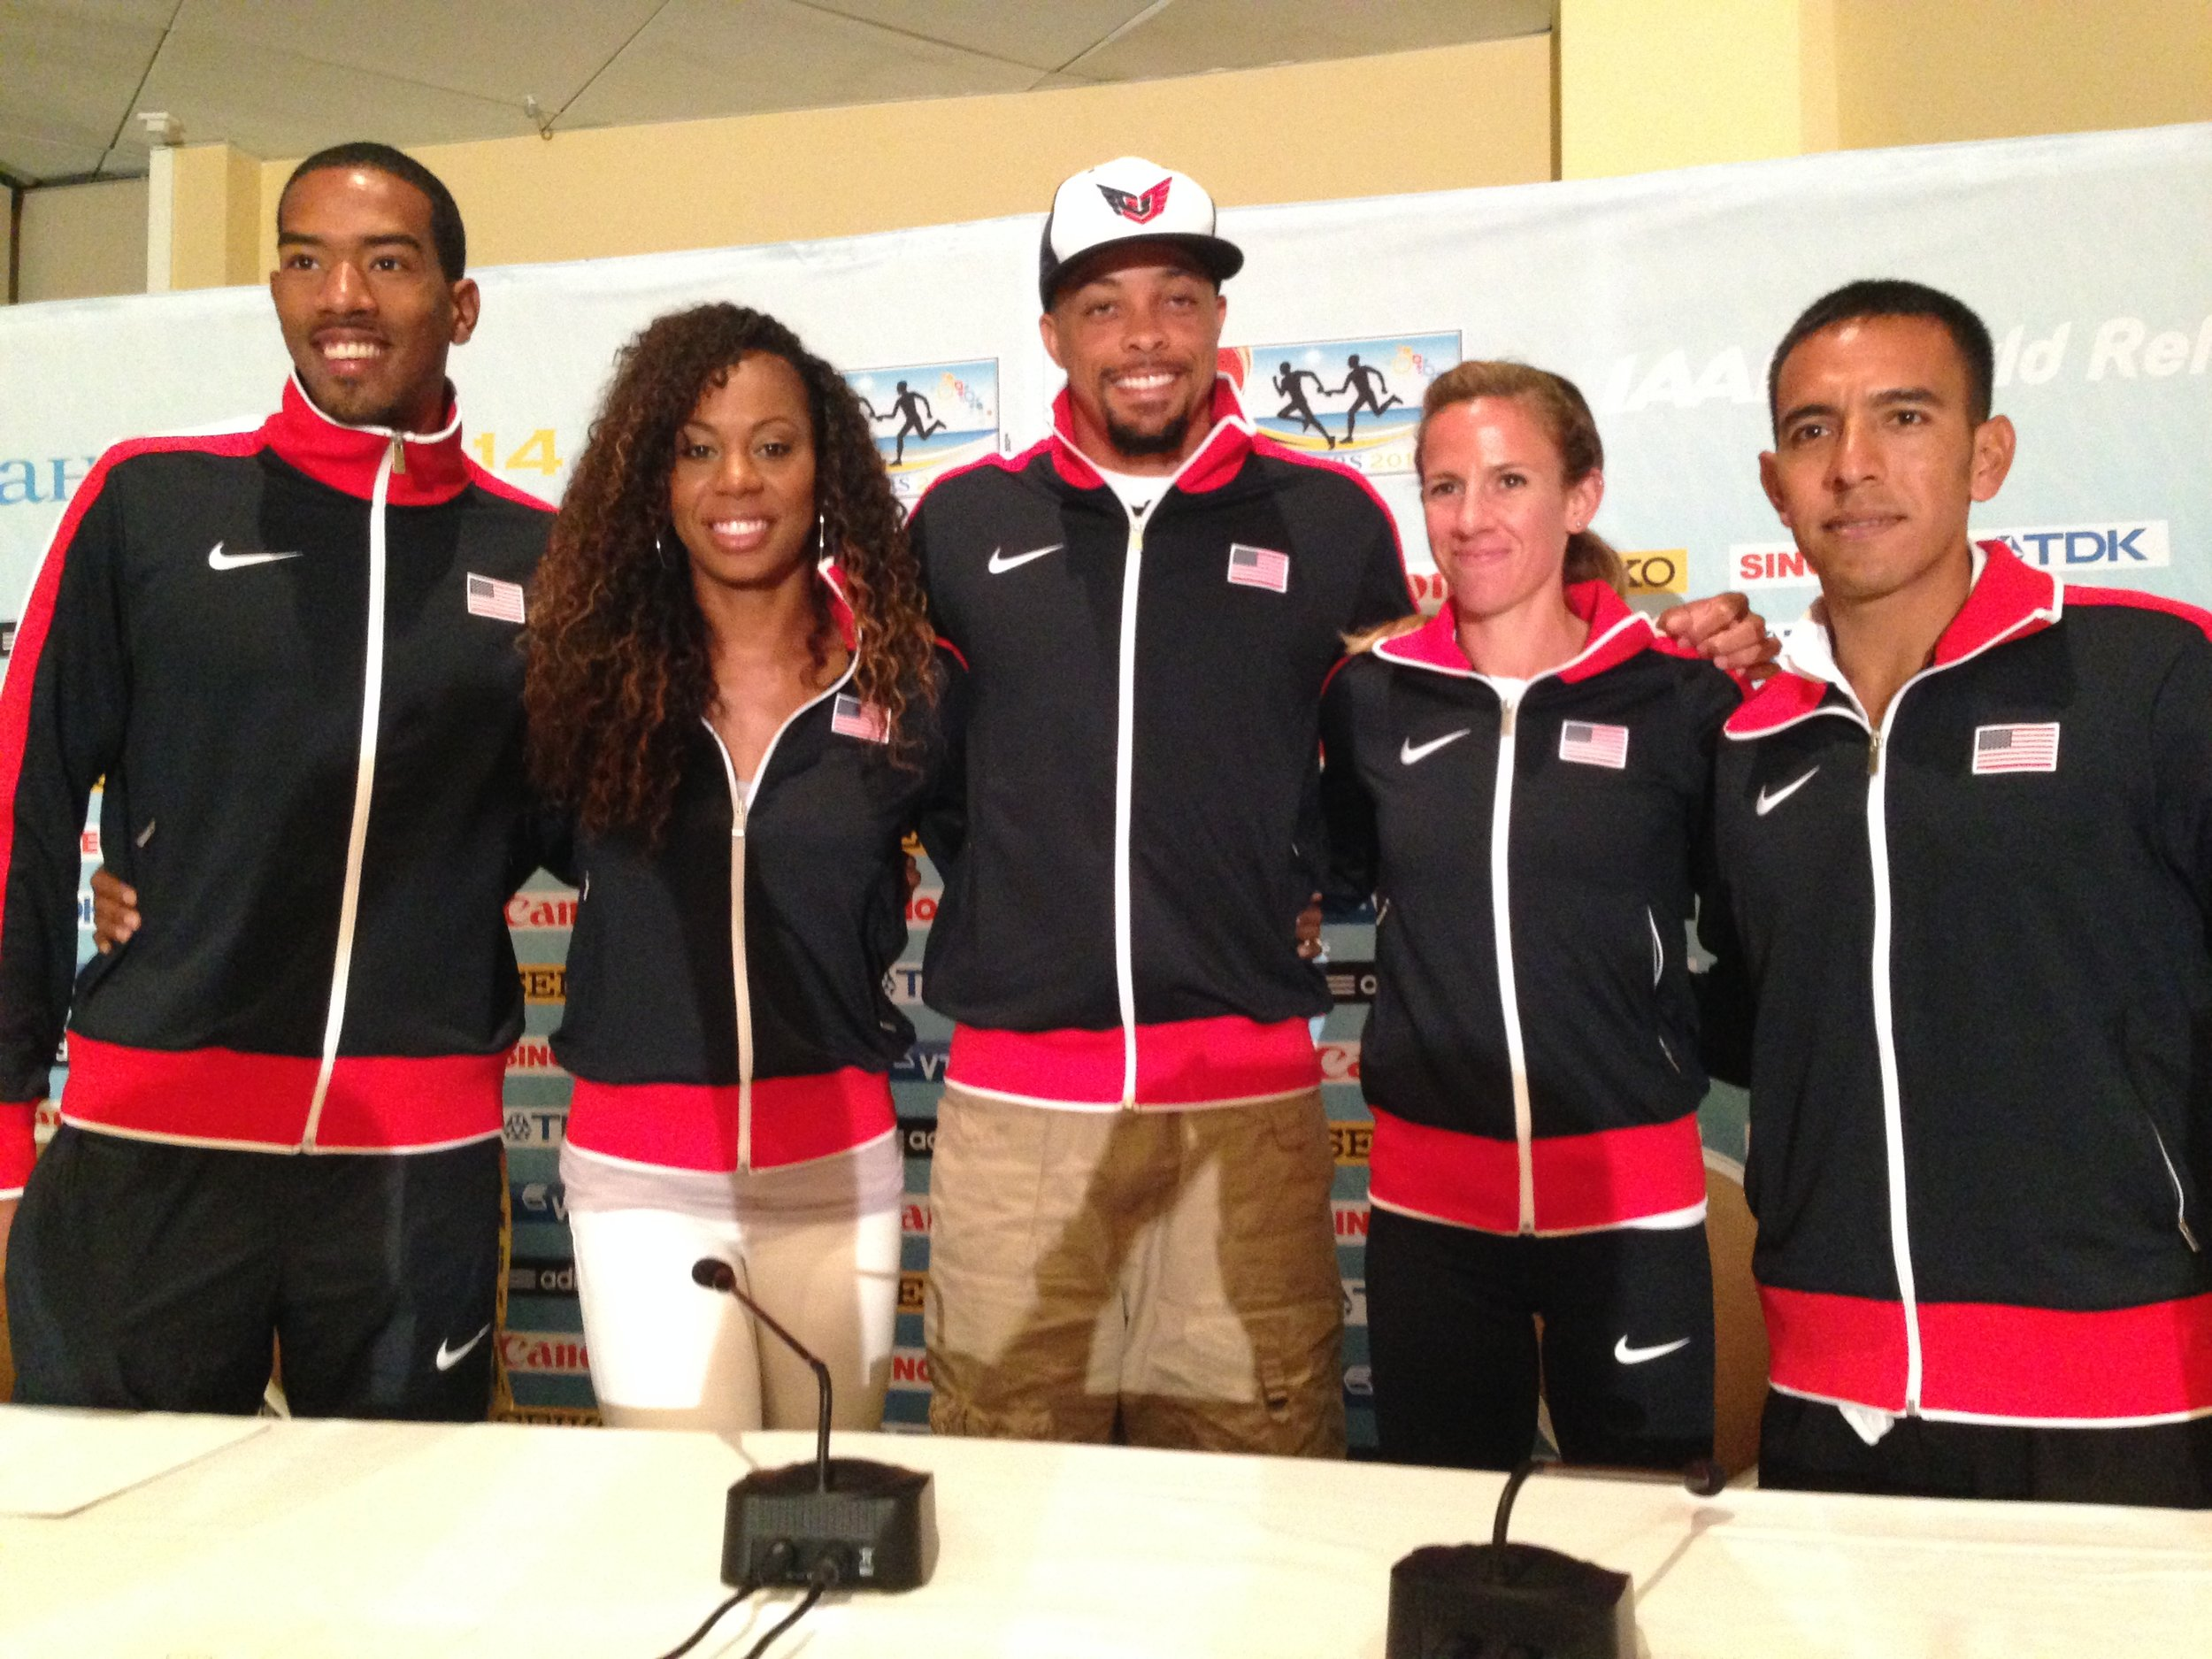 Left to right: Christian Taylor, Sanya Richards-Ross, Wallace Spearmon, Morgan Uceny, Leo Manzano at Friday's news conference